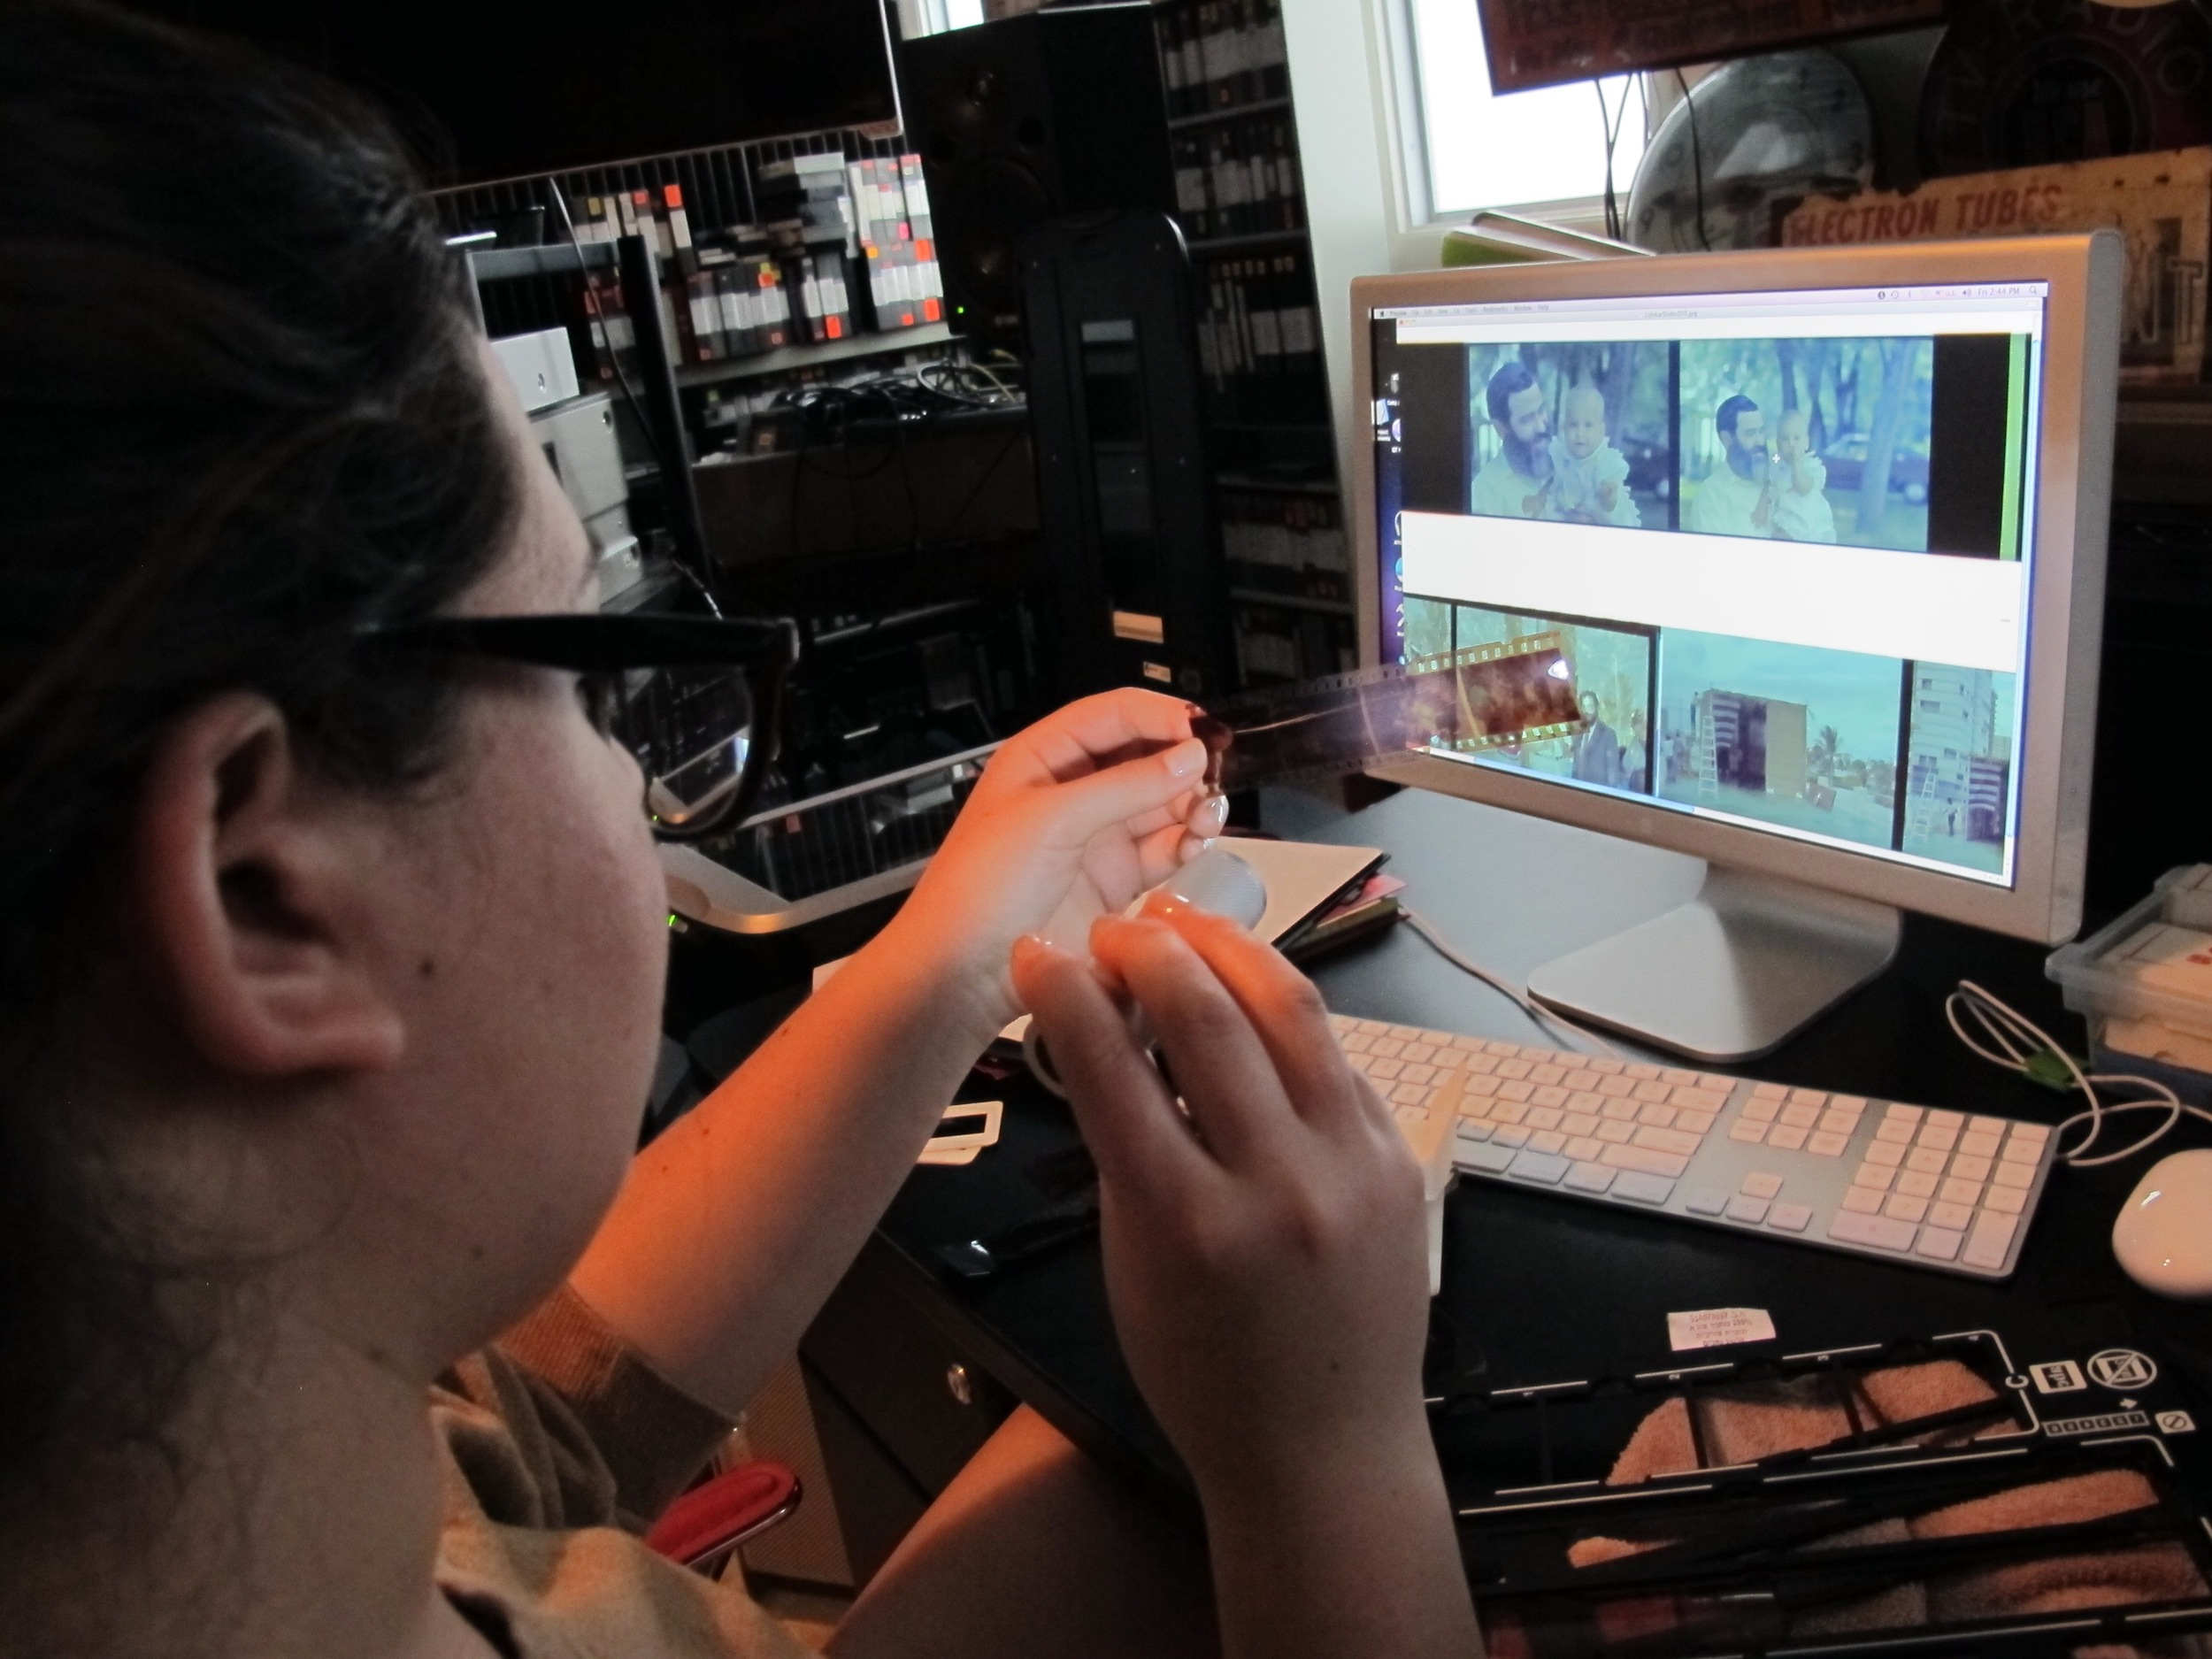 Sivan Levine digitizing 35mm negatives for a Family Documentary